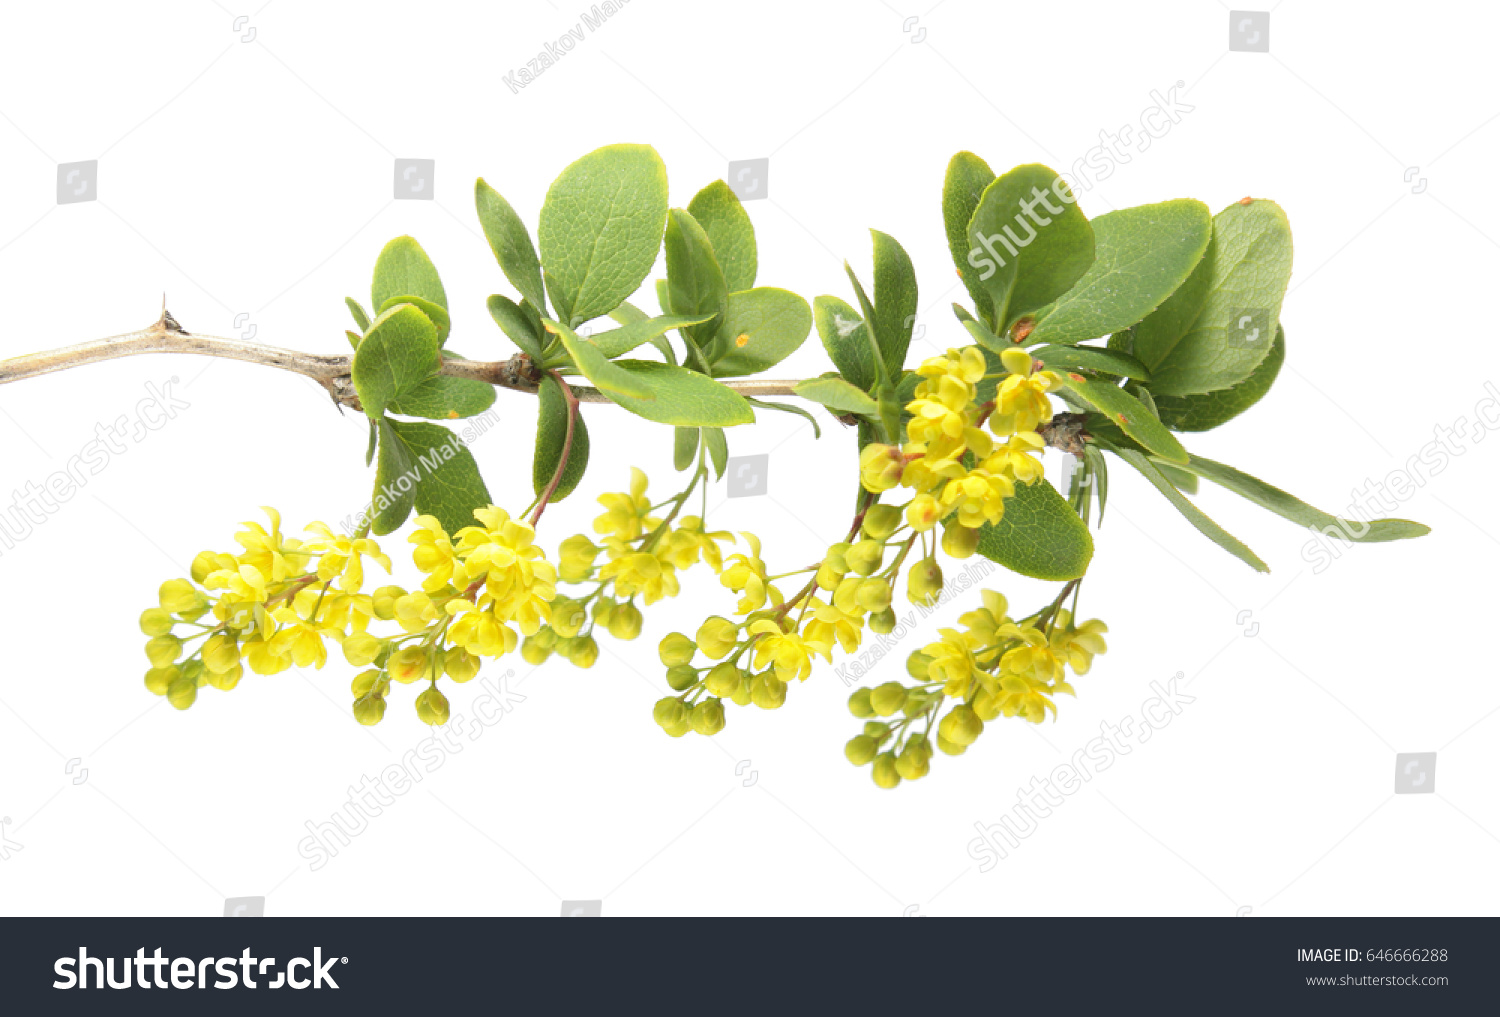 Branch Of Barberry Berberis Vulgaris With Yellow Flowers Isolated